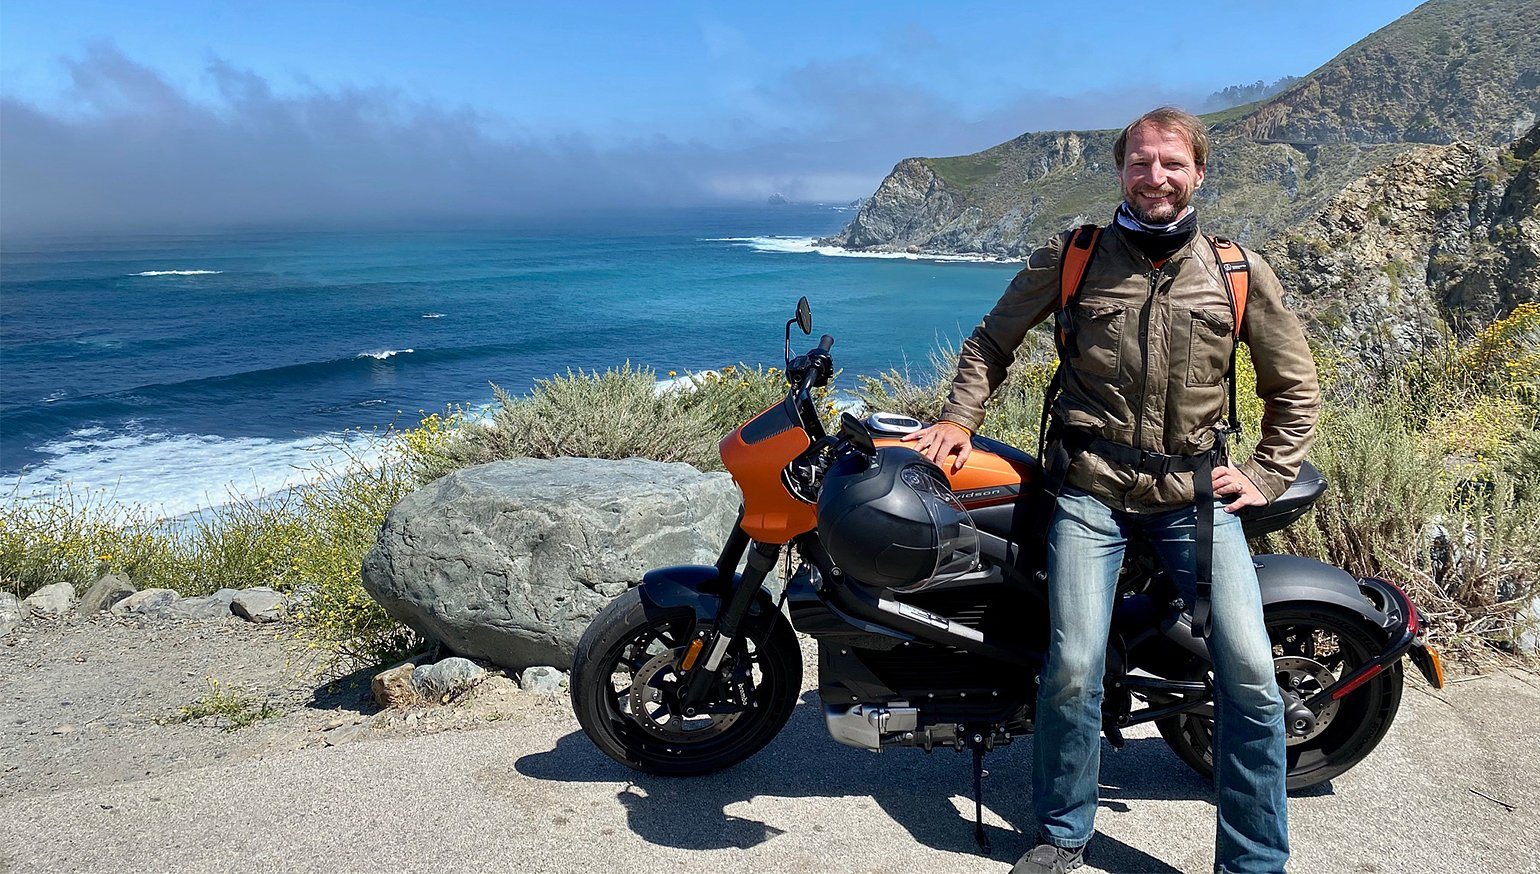 Long-haulin' LiveWire: A 3,500-mile ride on H-D's electric motorcycle